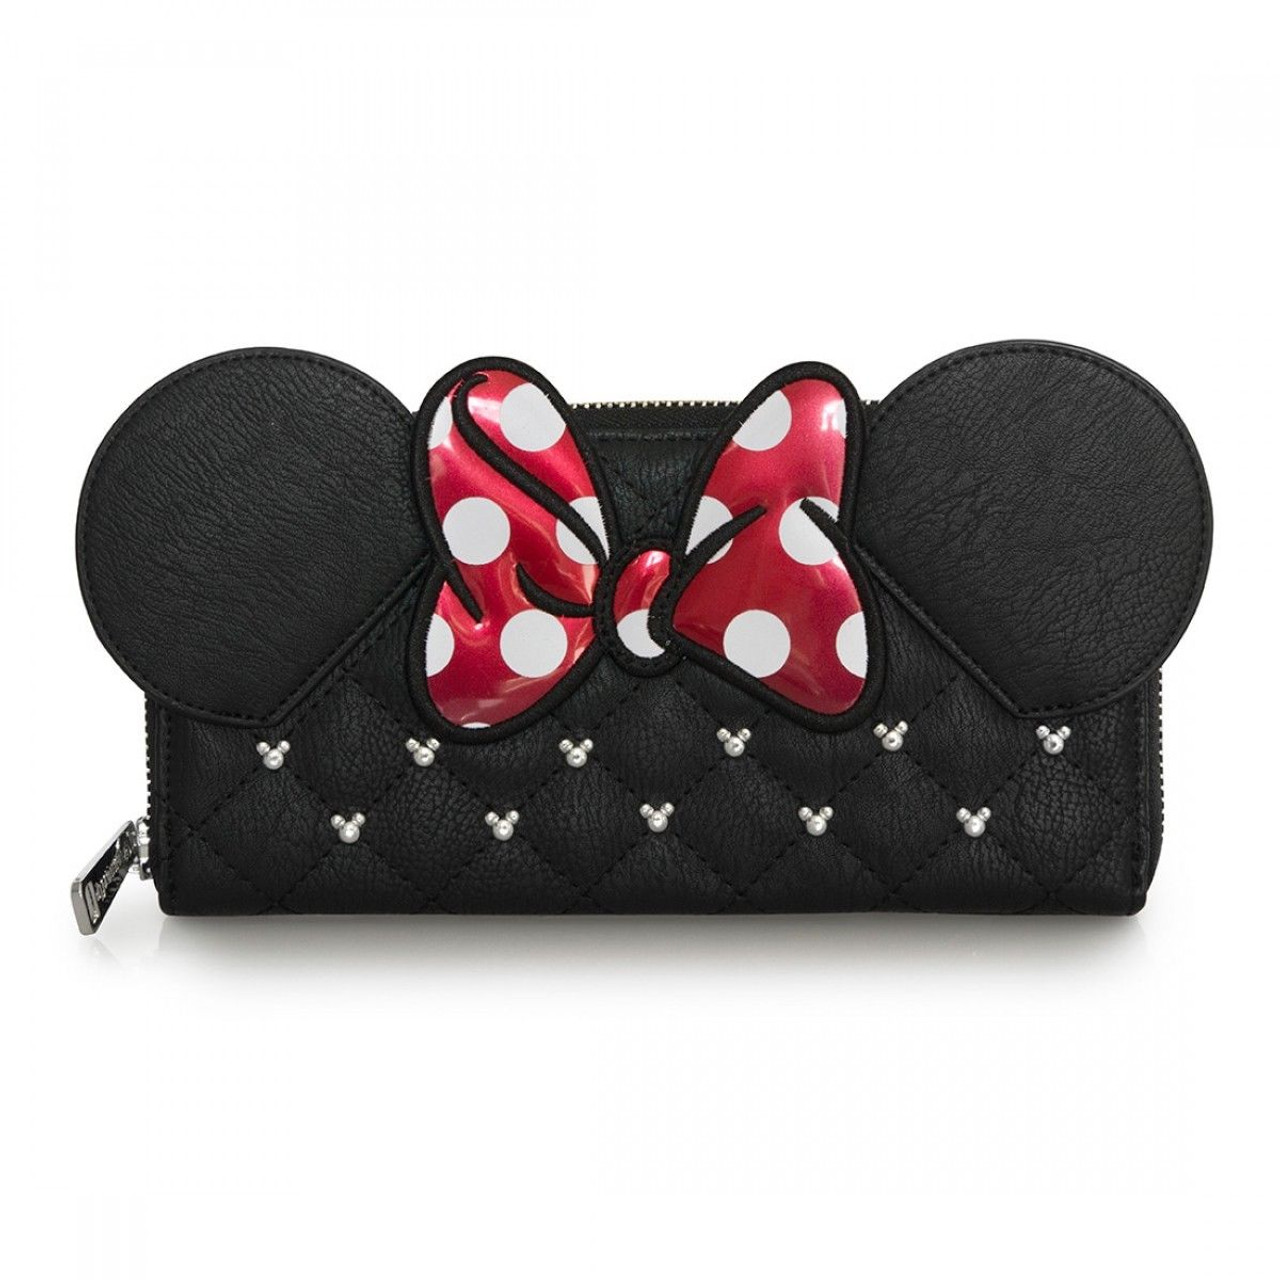 b87d375e1c85 Loungefly Minnie Mouse Bow Disney World Mickey Ears Zip Around Wallet  WDWA0564